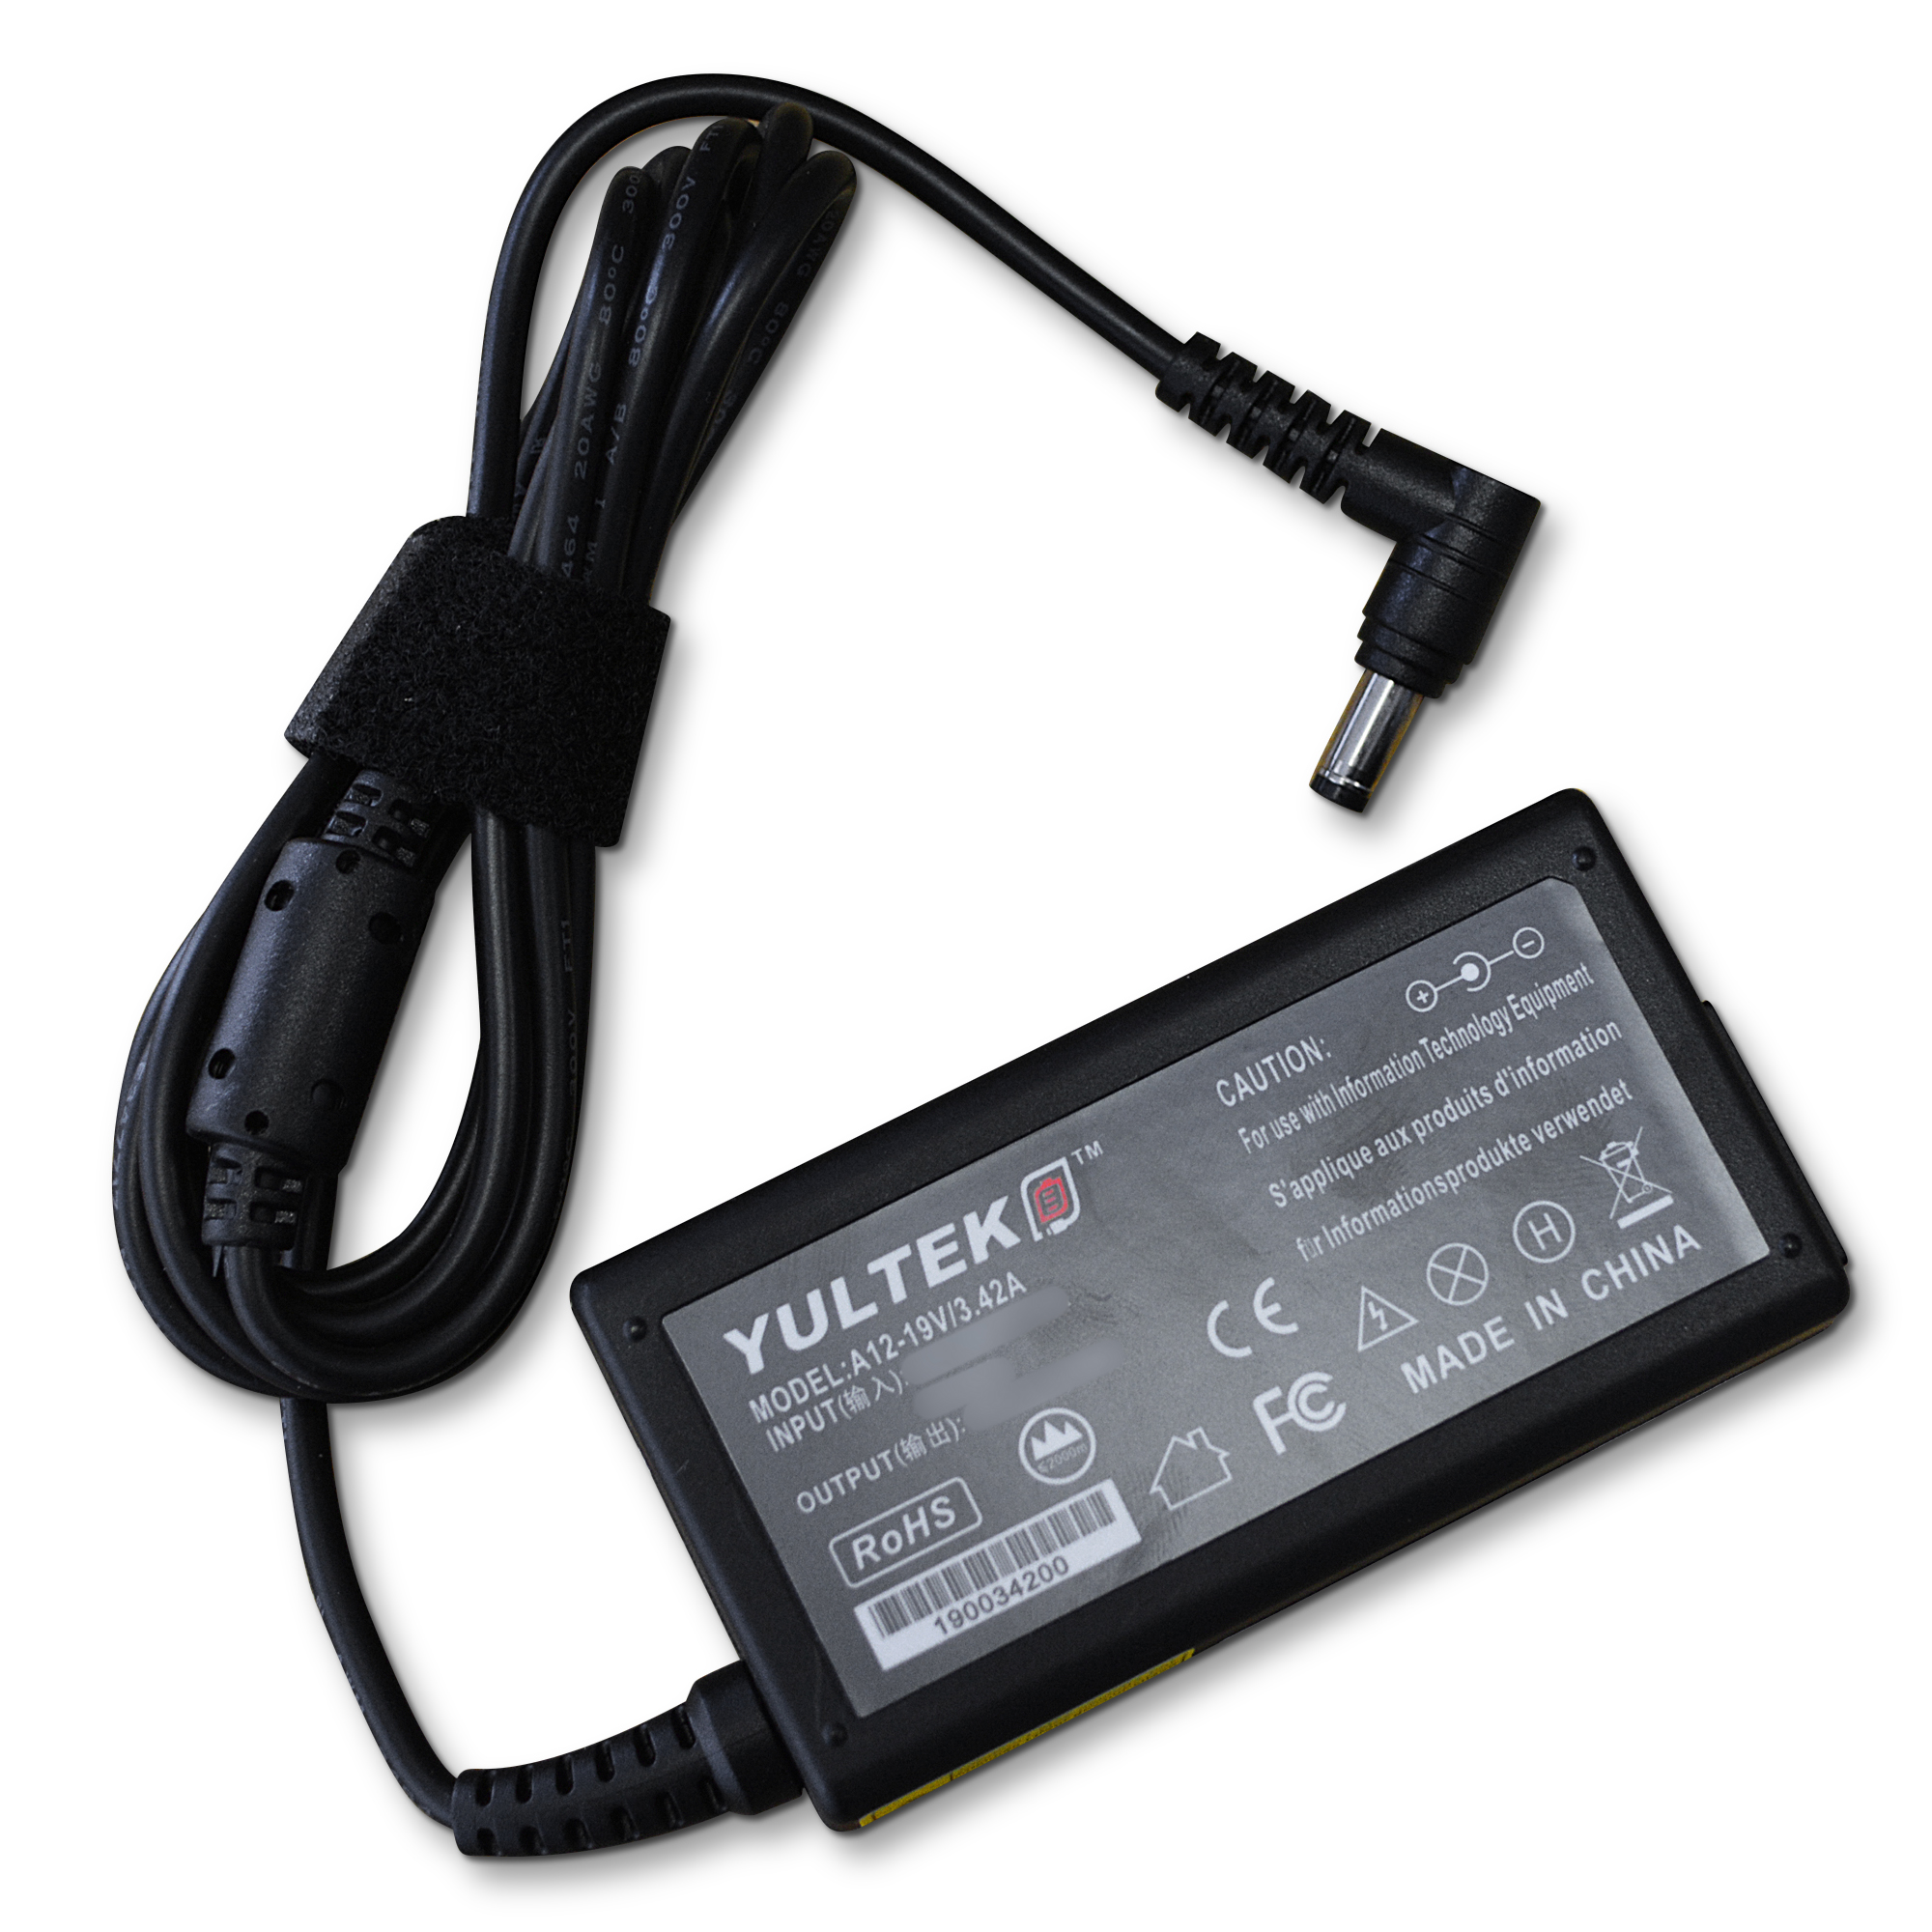 Packard Bell iGo 4000er Laptop Charger